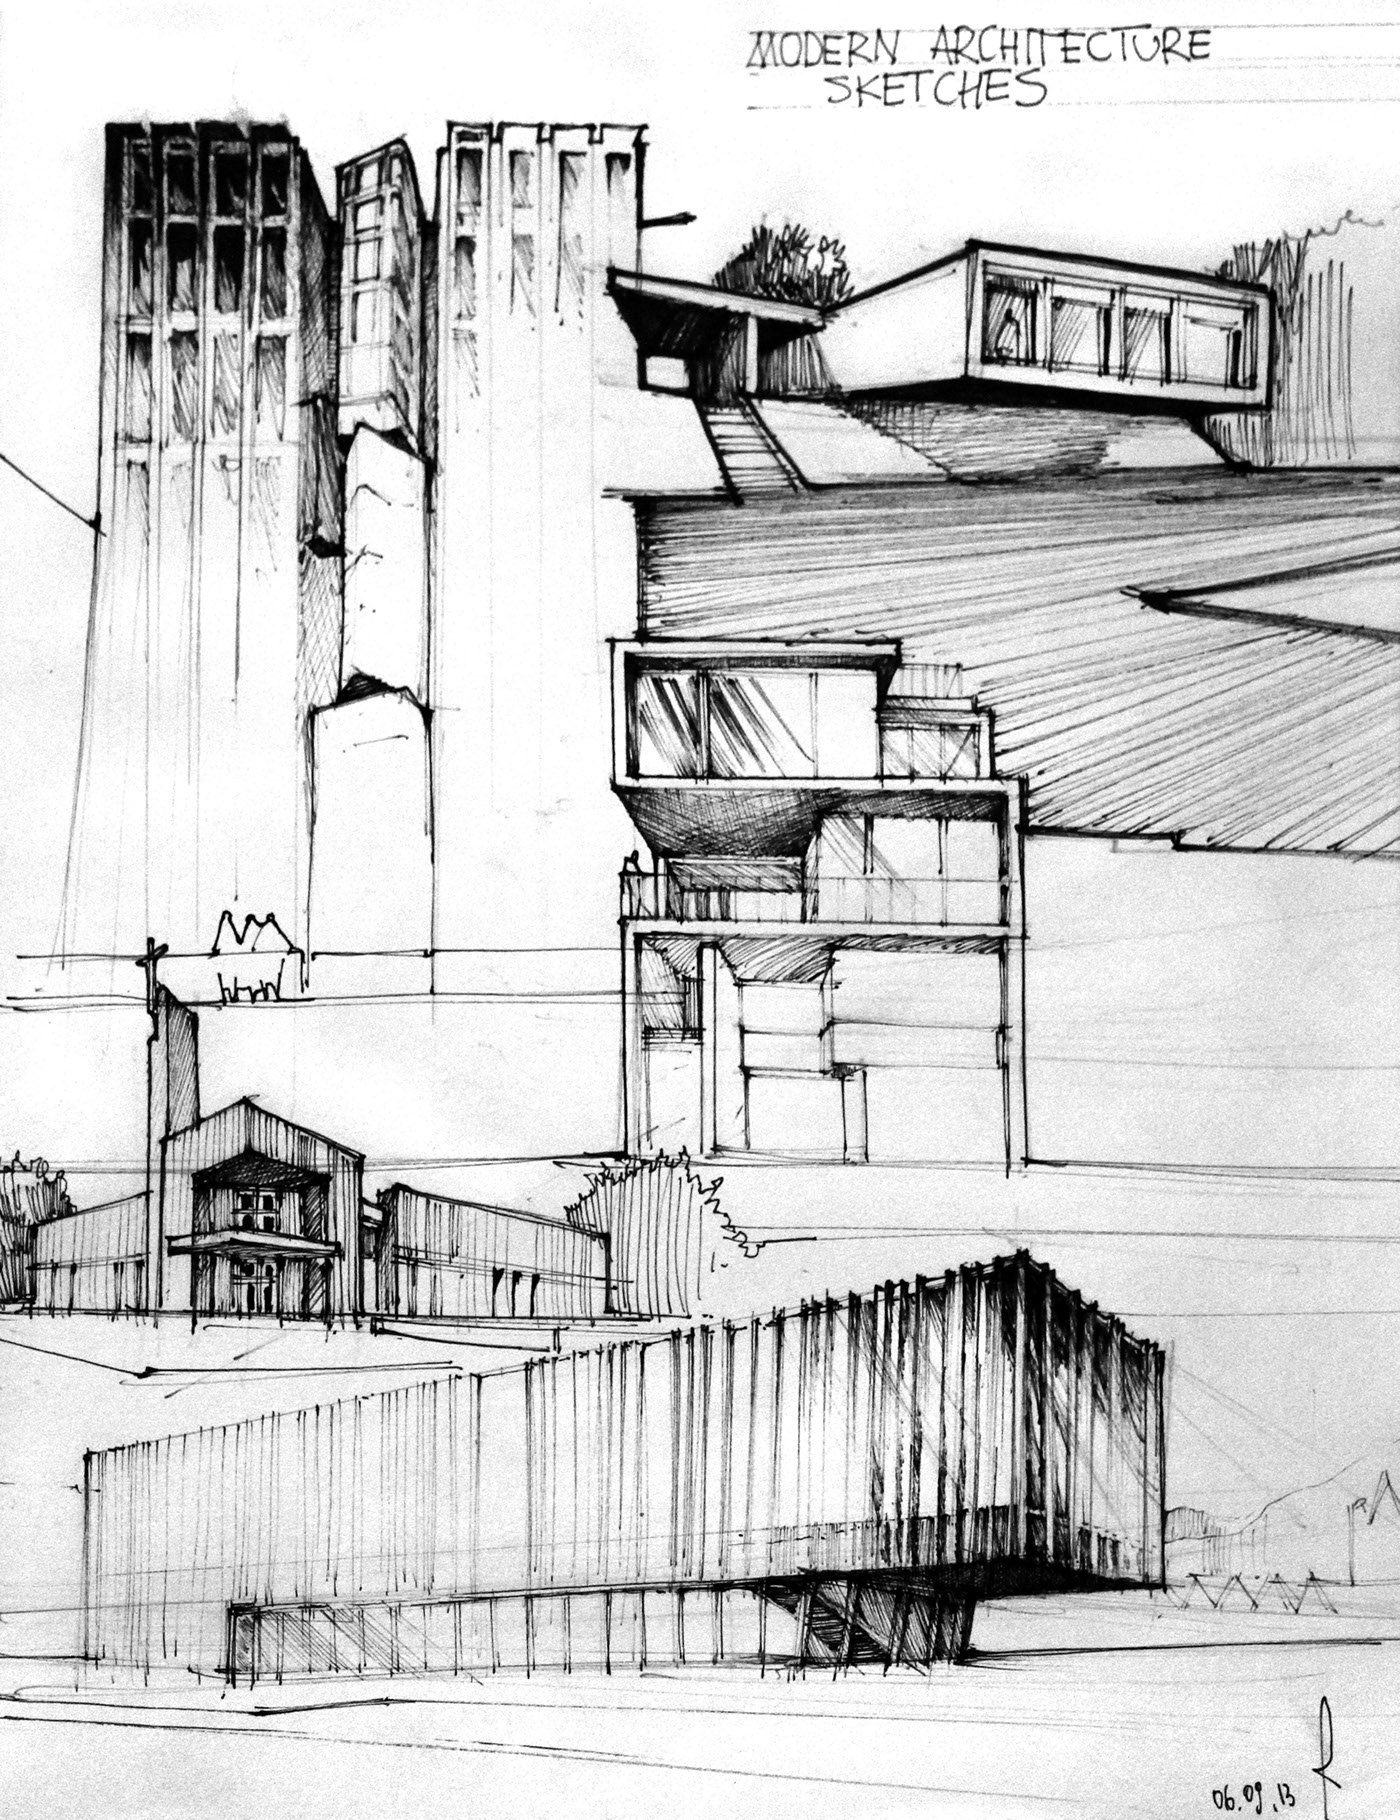 Modern Architecture Sketches modern architecture on behance